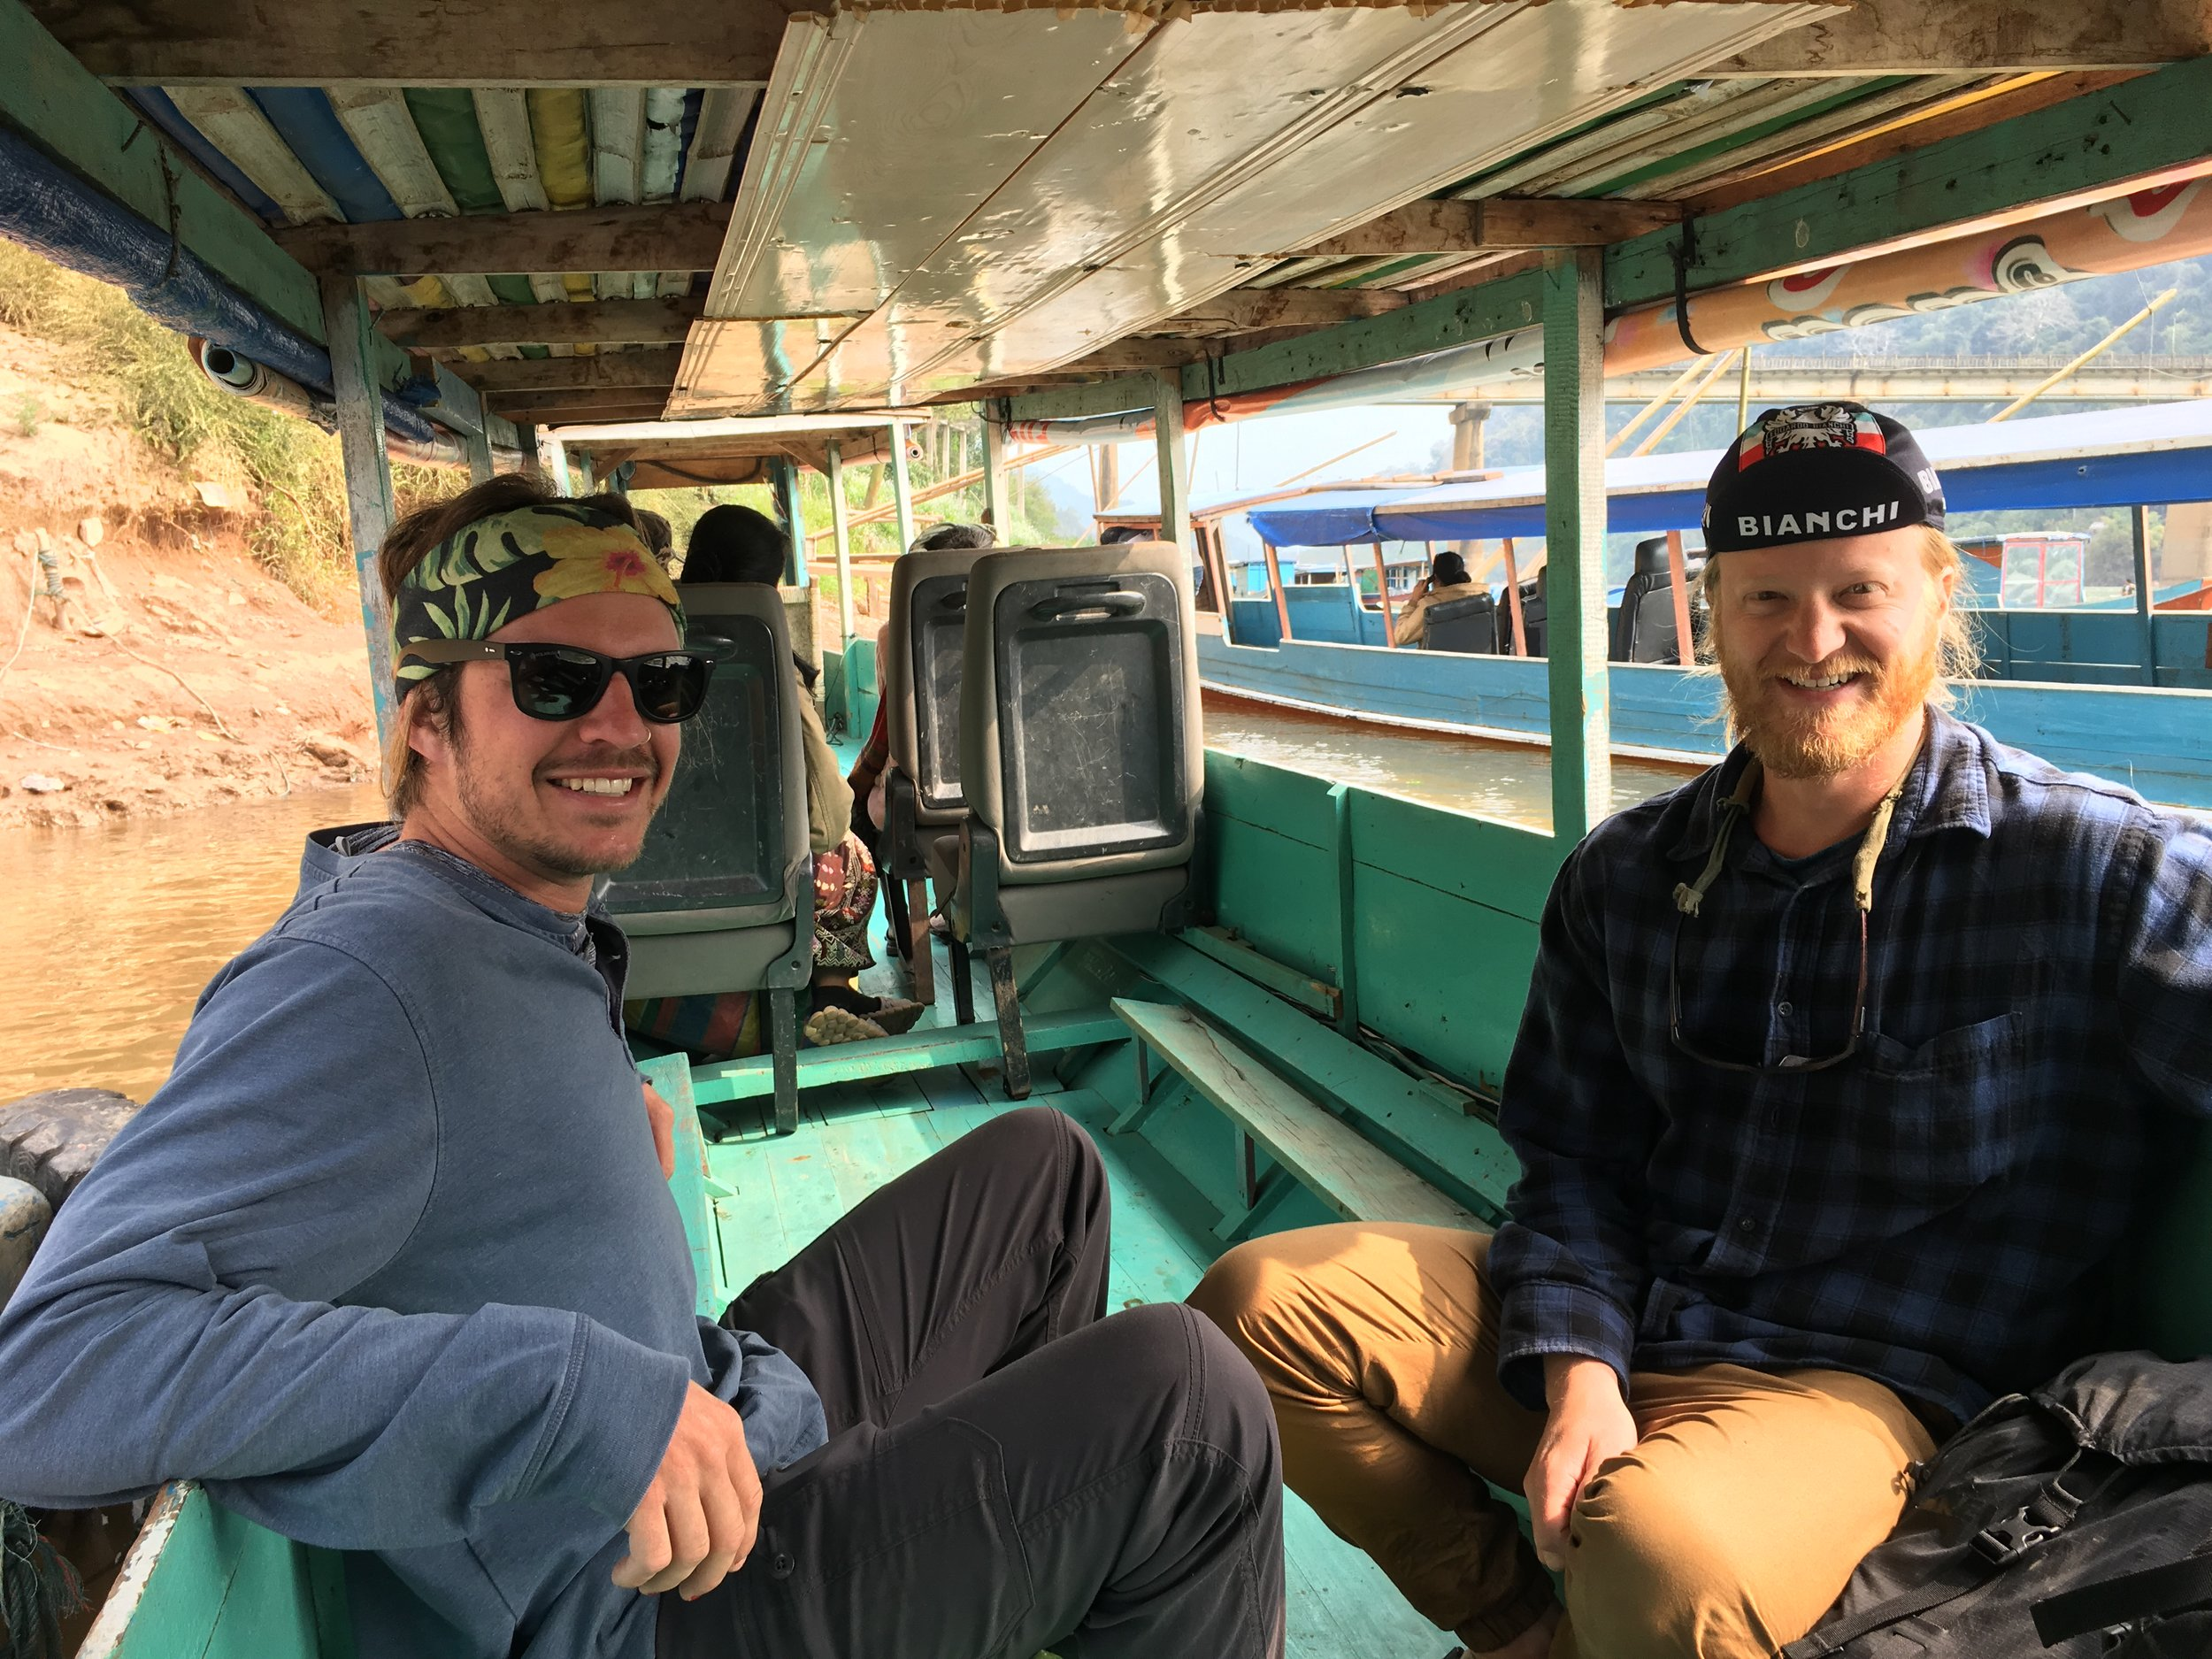 Christian and Mike ready to get up close and personal with the locals on this cramped, slowly sinking boat